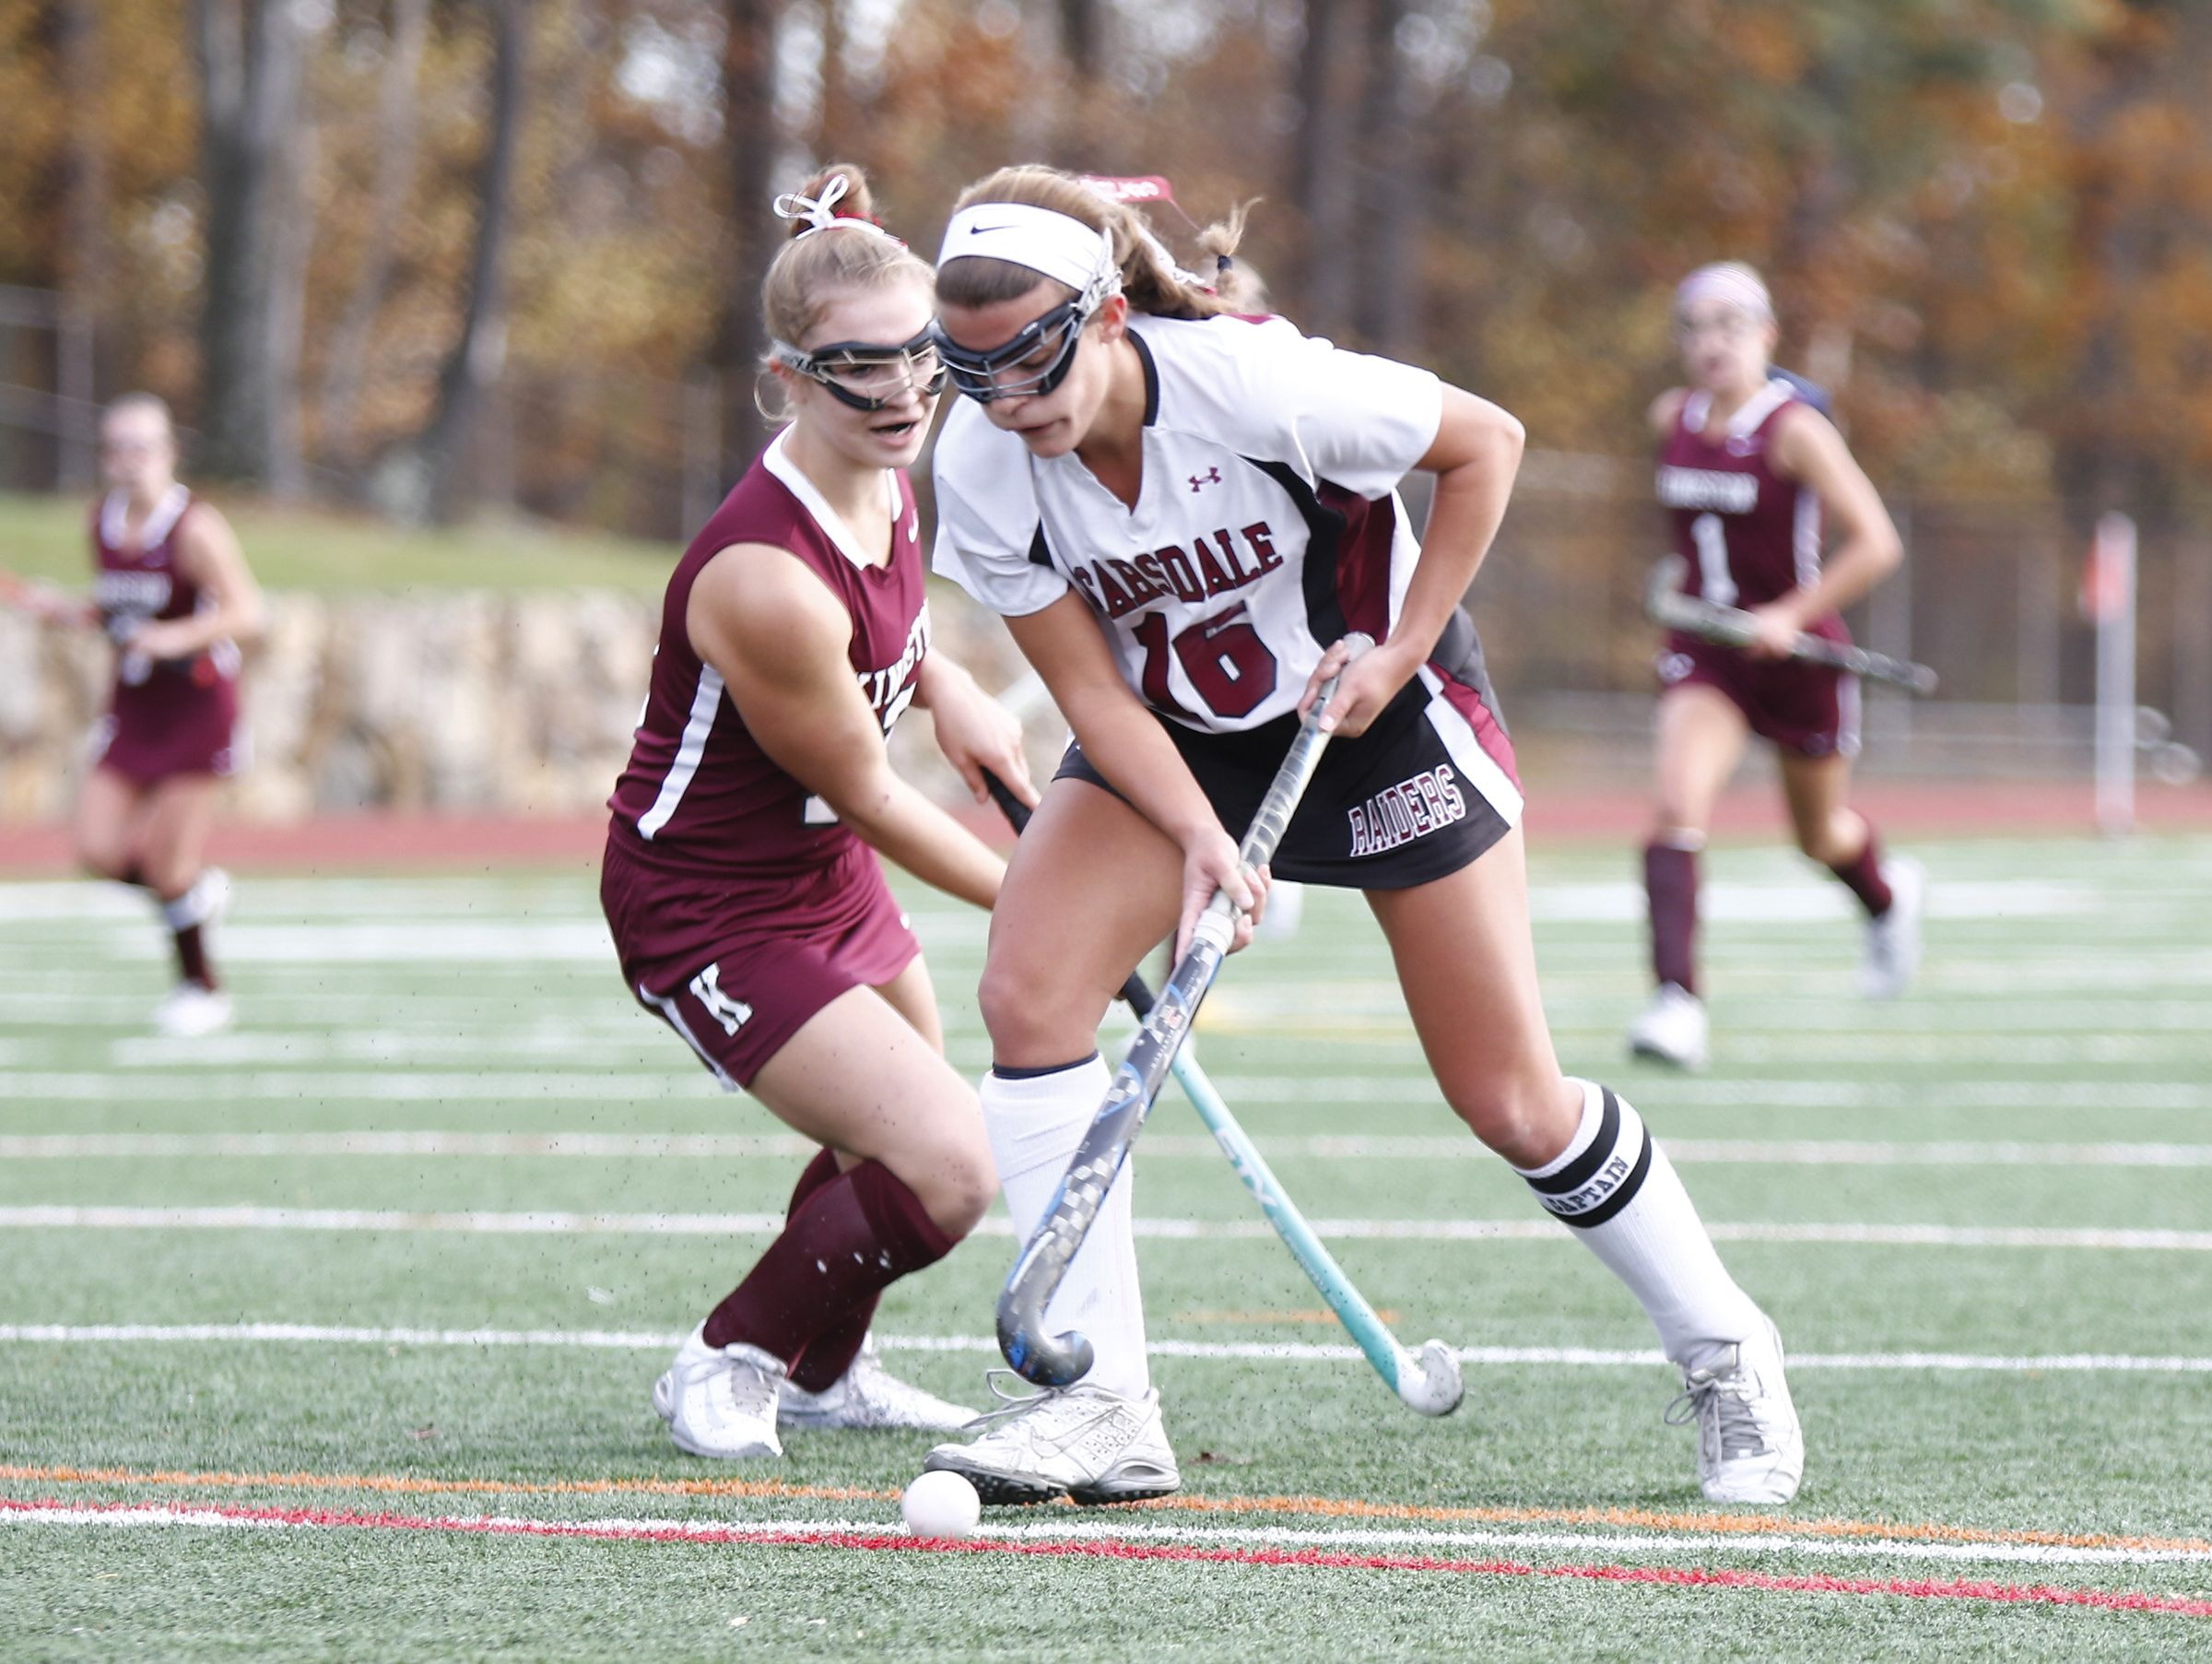 Scarsdale's Erin Nicholas (16 works past a Kingston defender during their 5-0 win in the Class A regional championship field hockey game at Valhalla High School on Saturday, November 5, 2016.